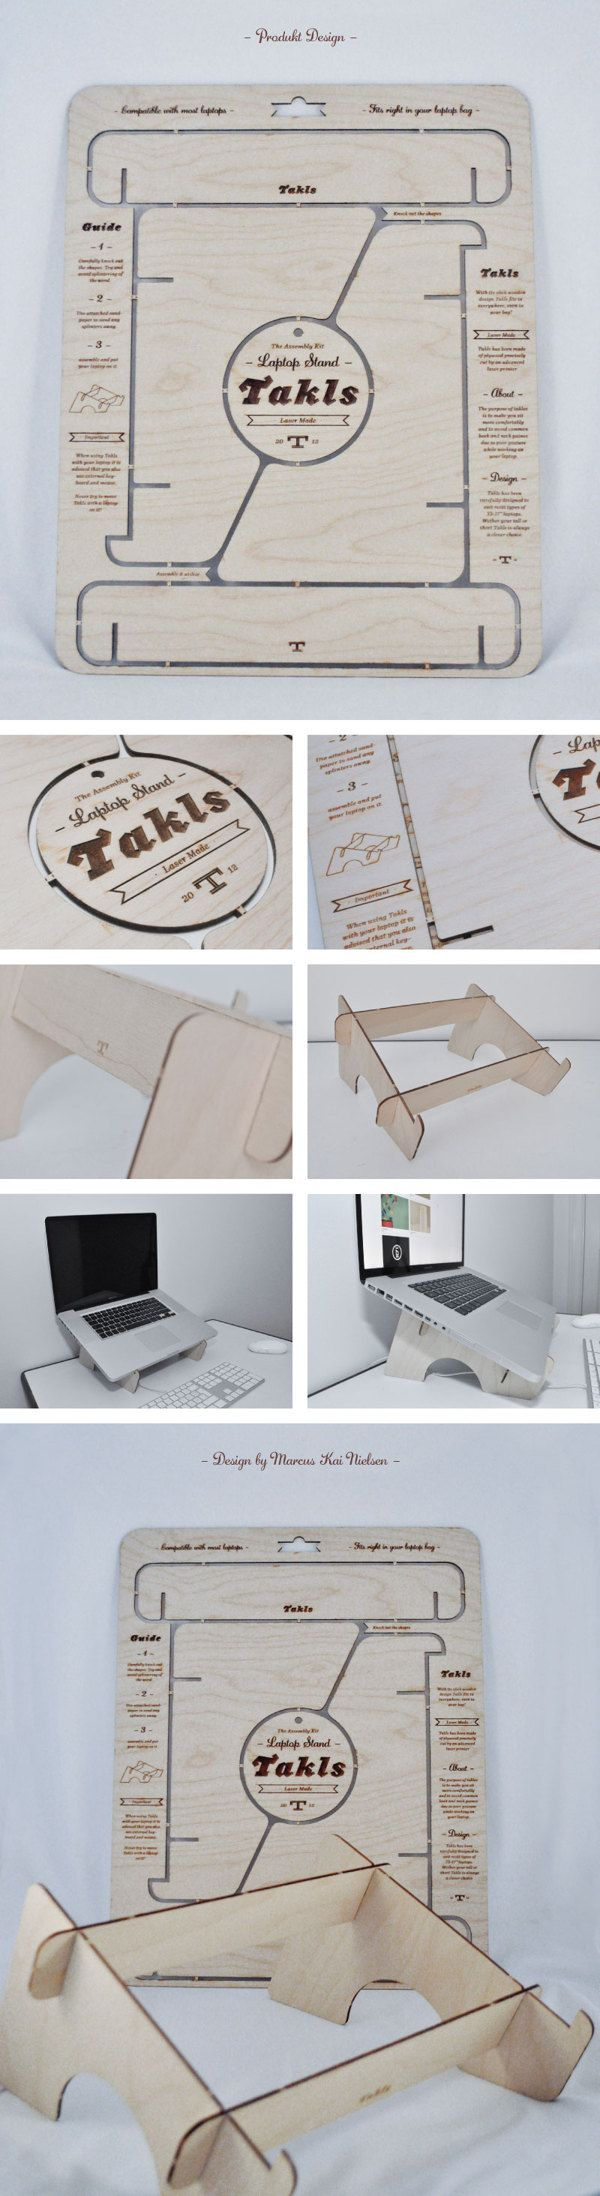 Takls Laptop Stand by Marcus Kai Nielsen, via Behance